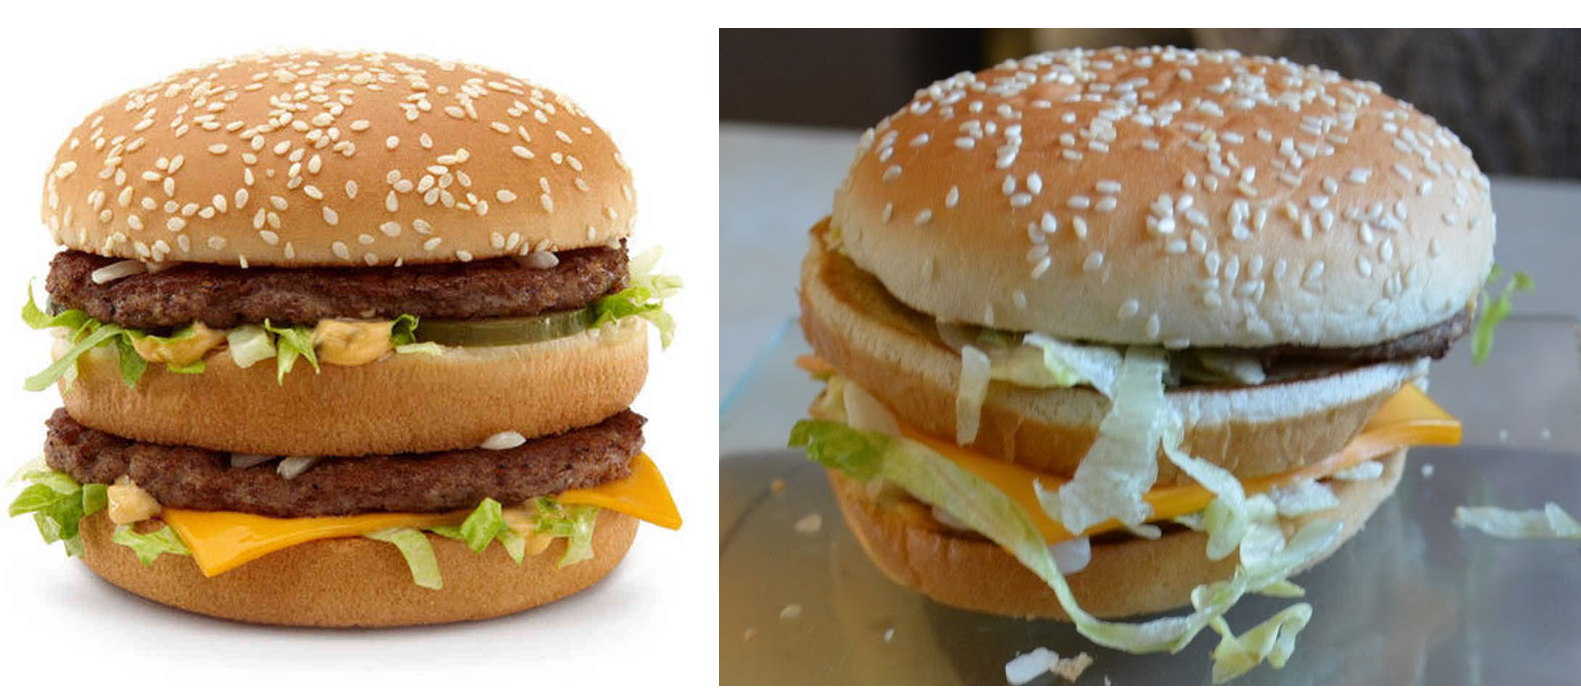 Big Mac Comparison